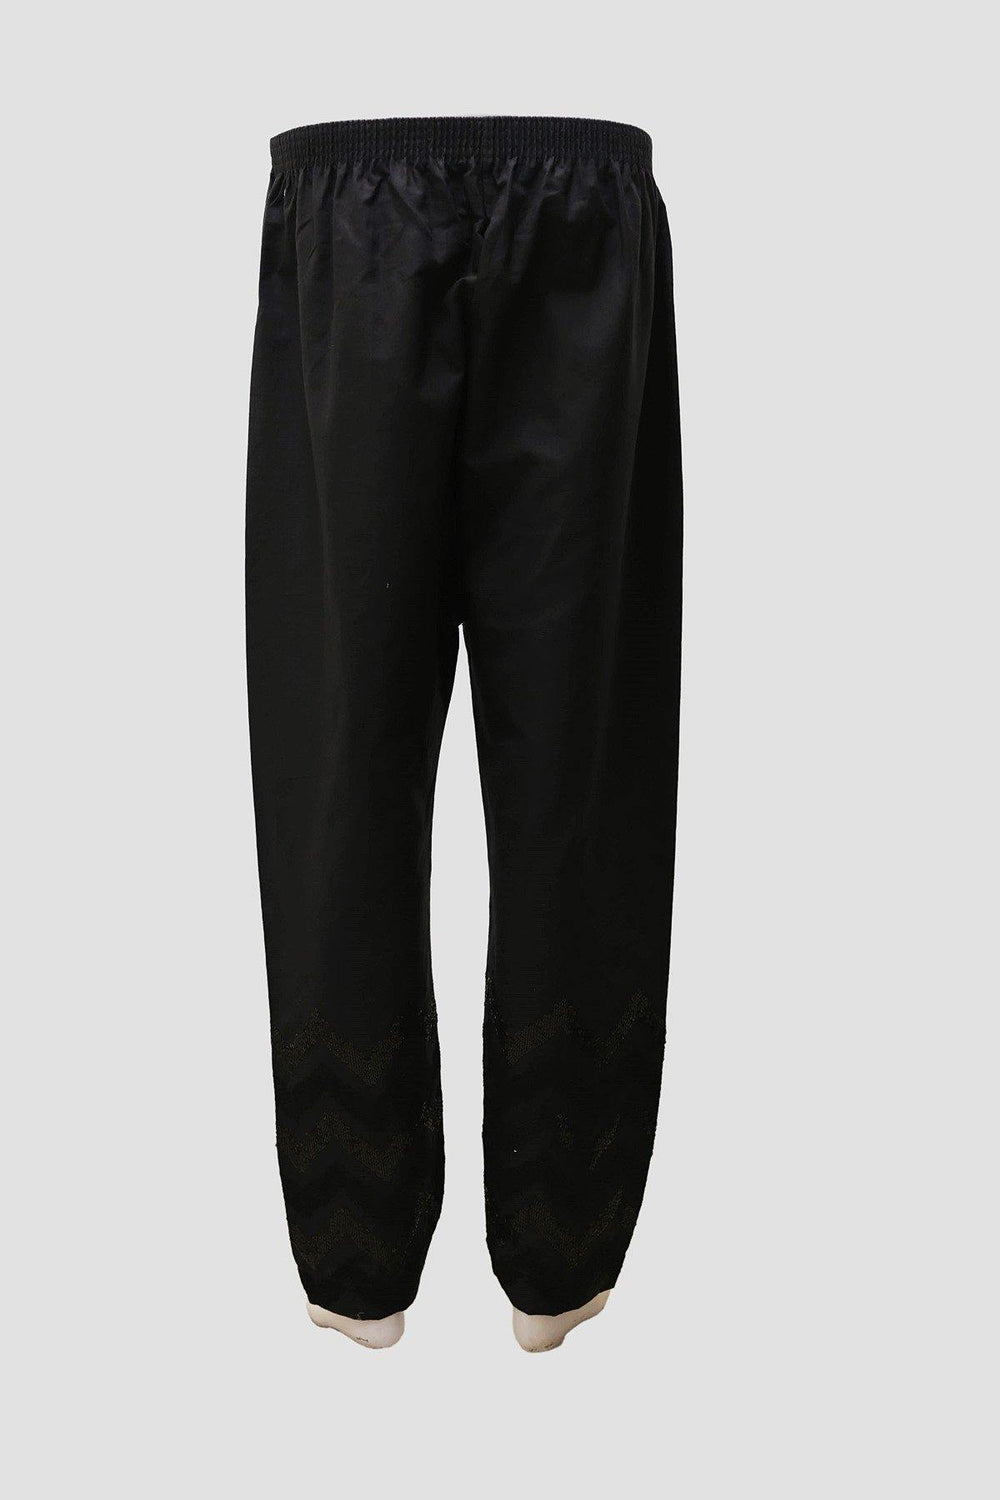 Cotton Stacker Embroidered Trousers - Black - Brandsea UK